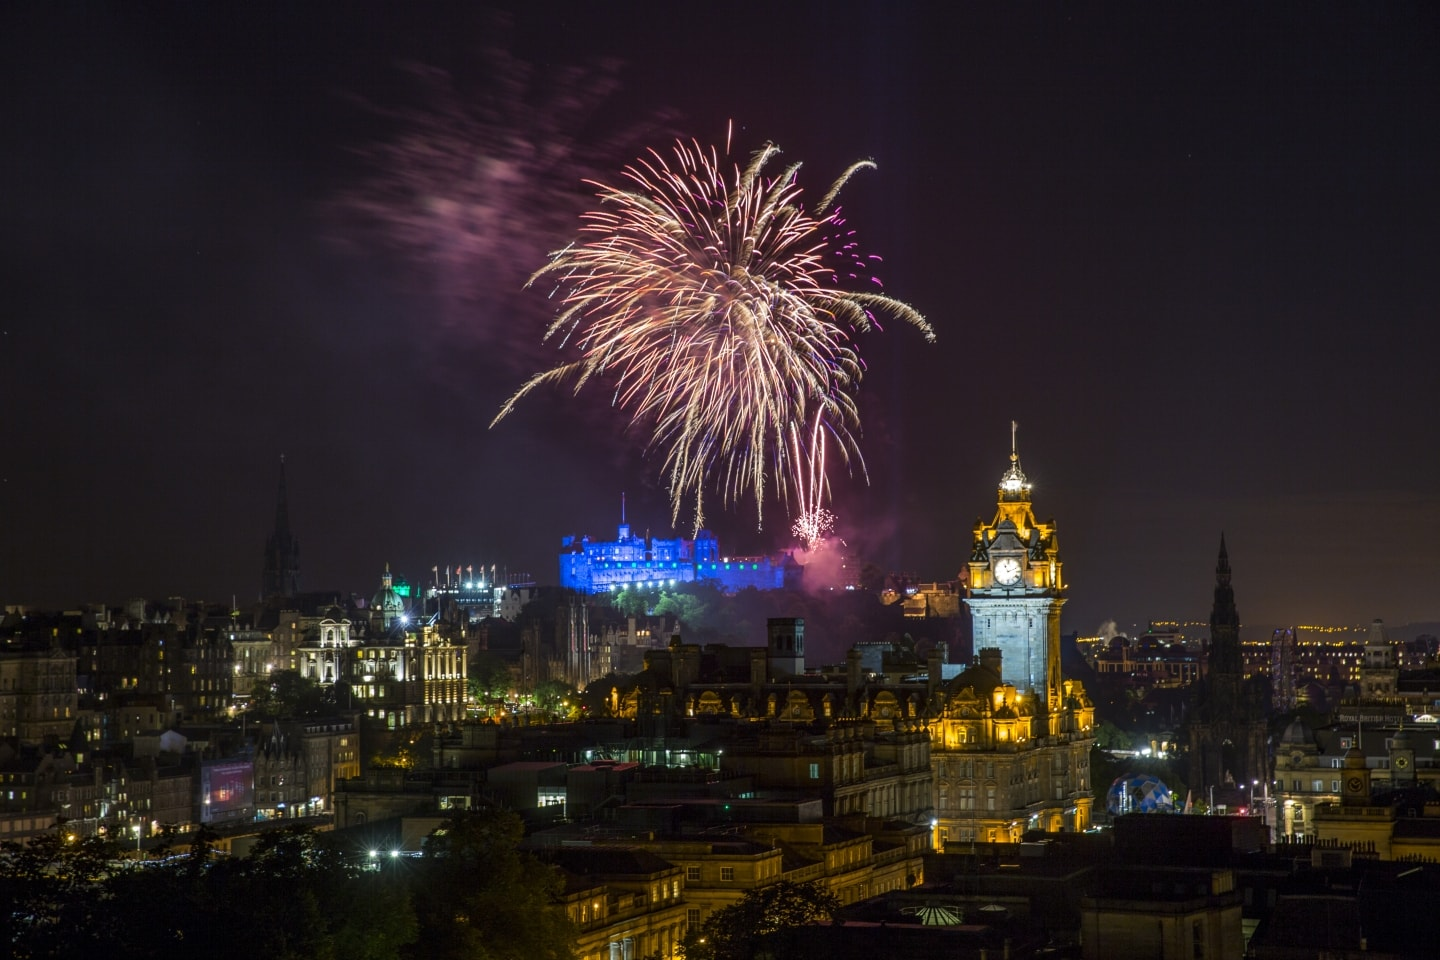 Visit Edinburgh on the Caledonian Sleeper